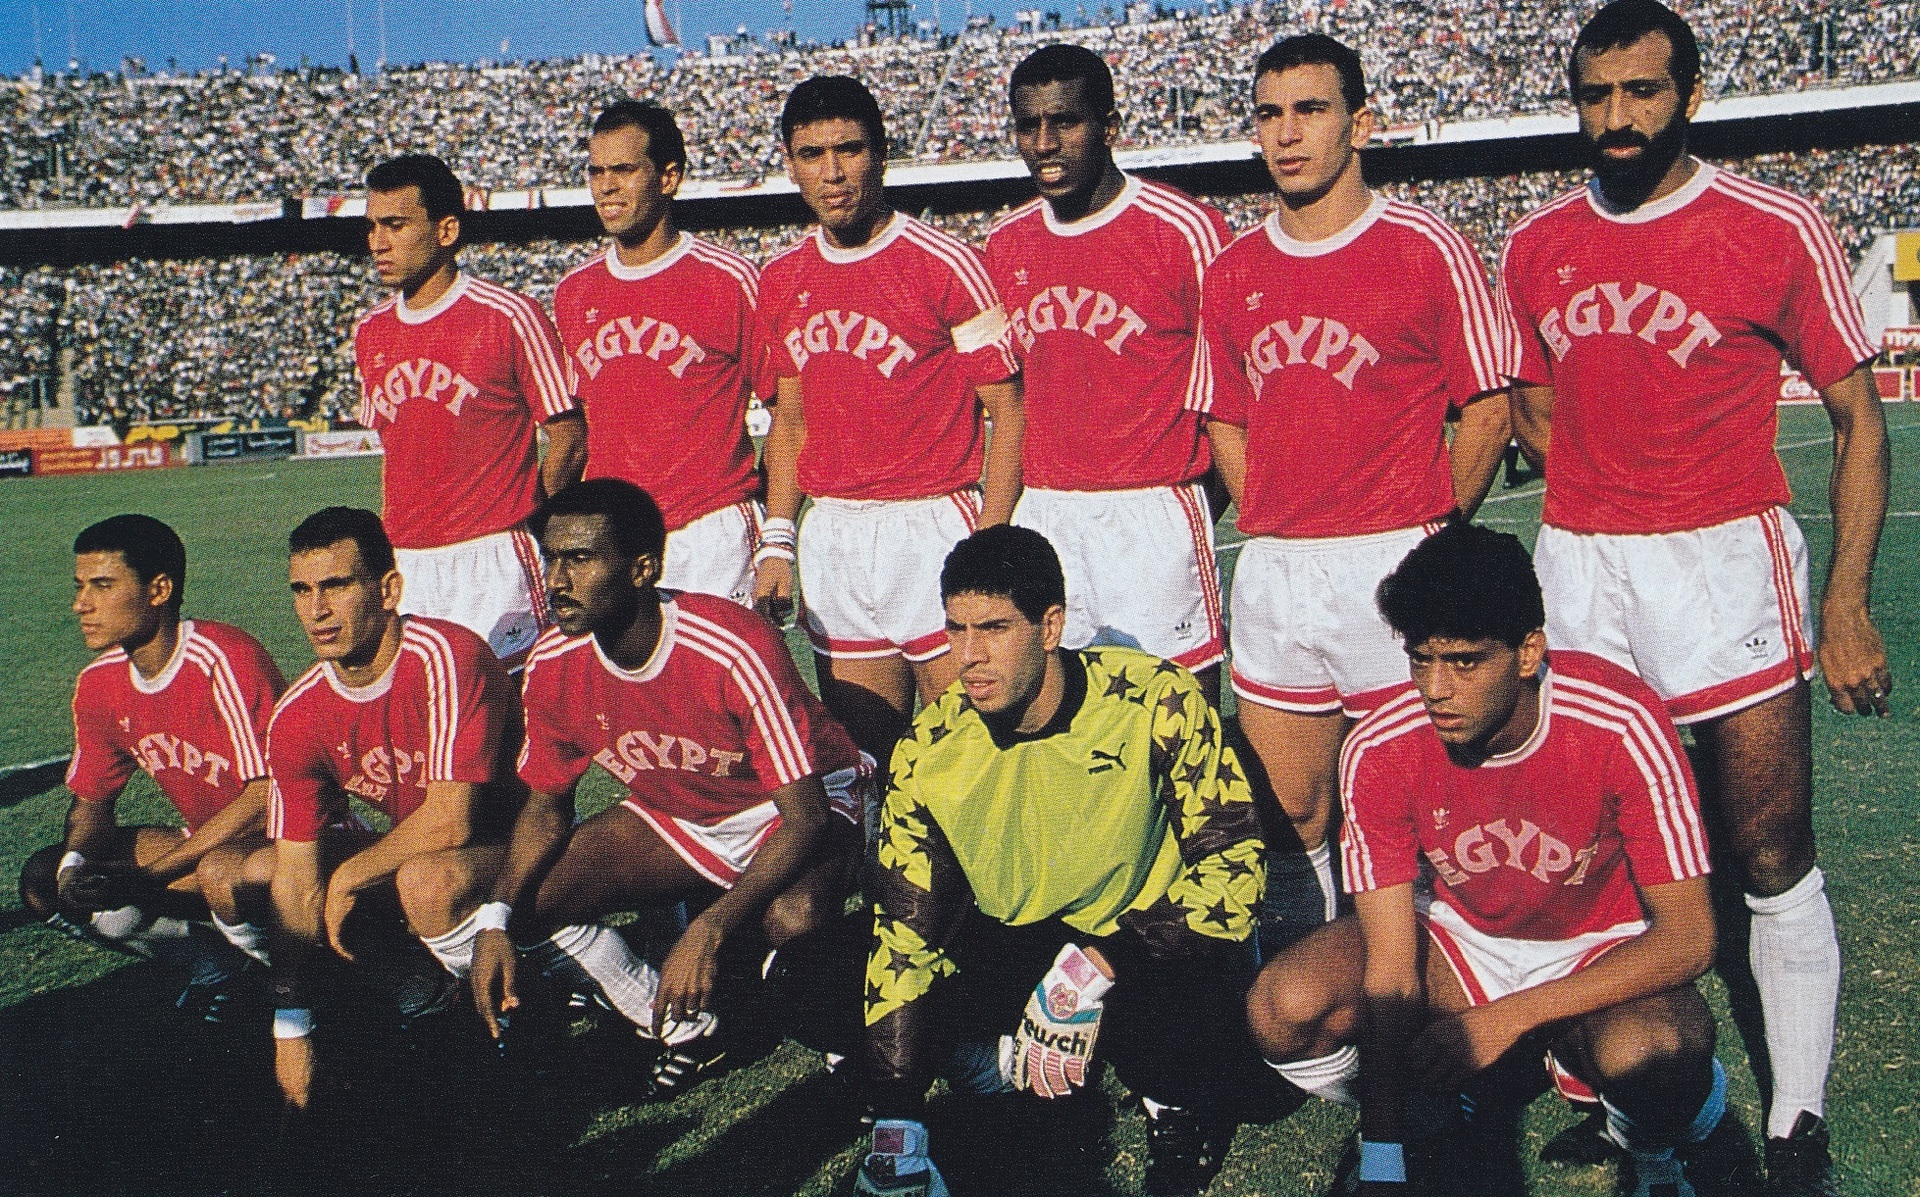 Egypt-1989-adidas-home-kit-red-white-white-line-up.jpg